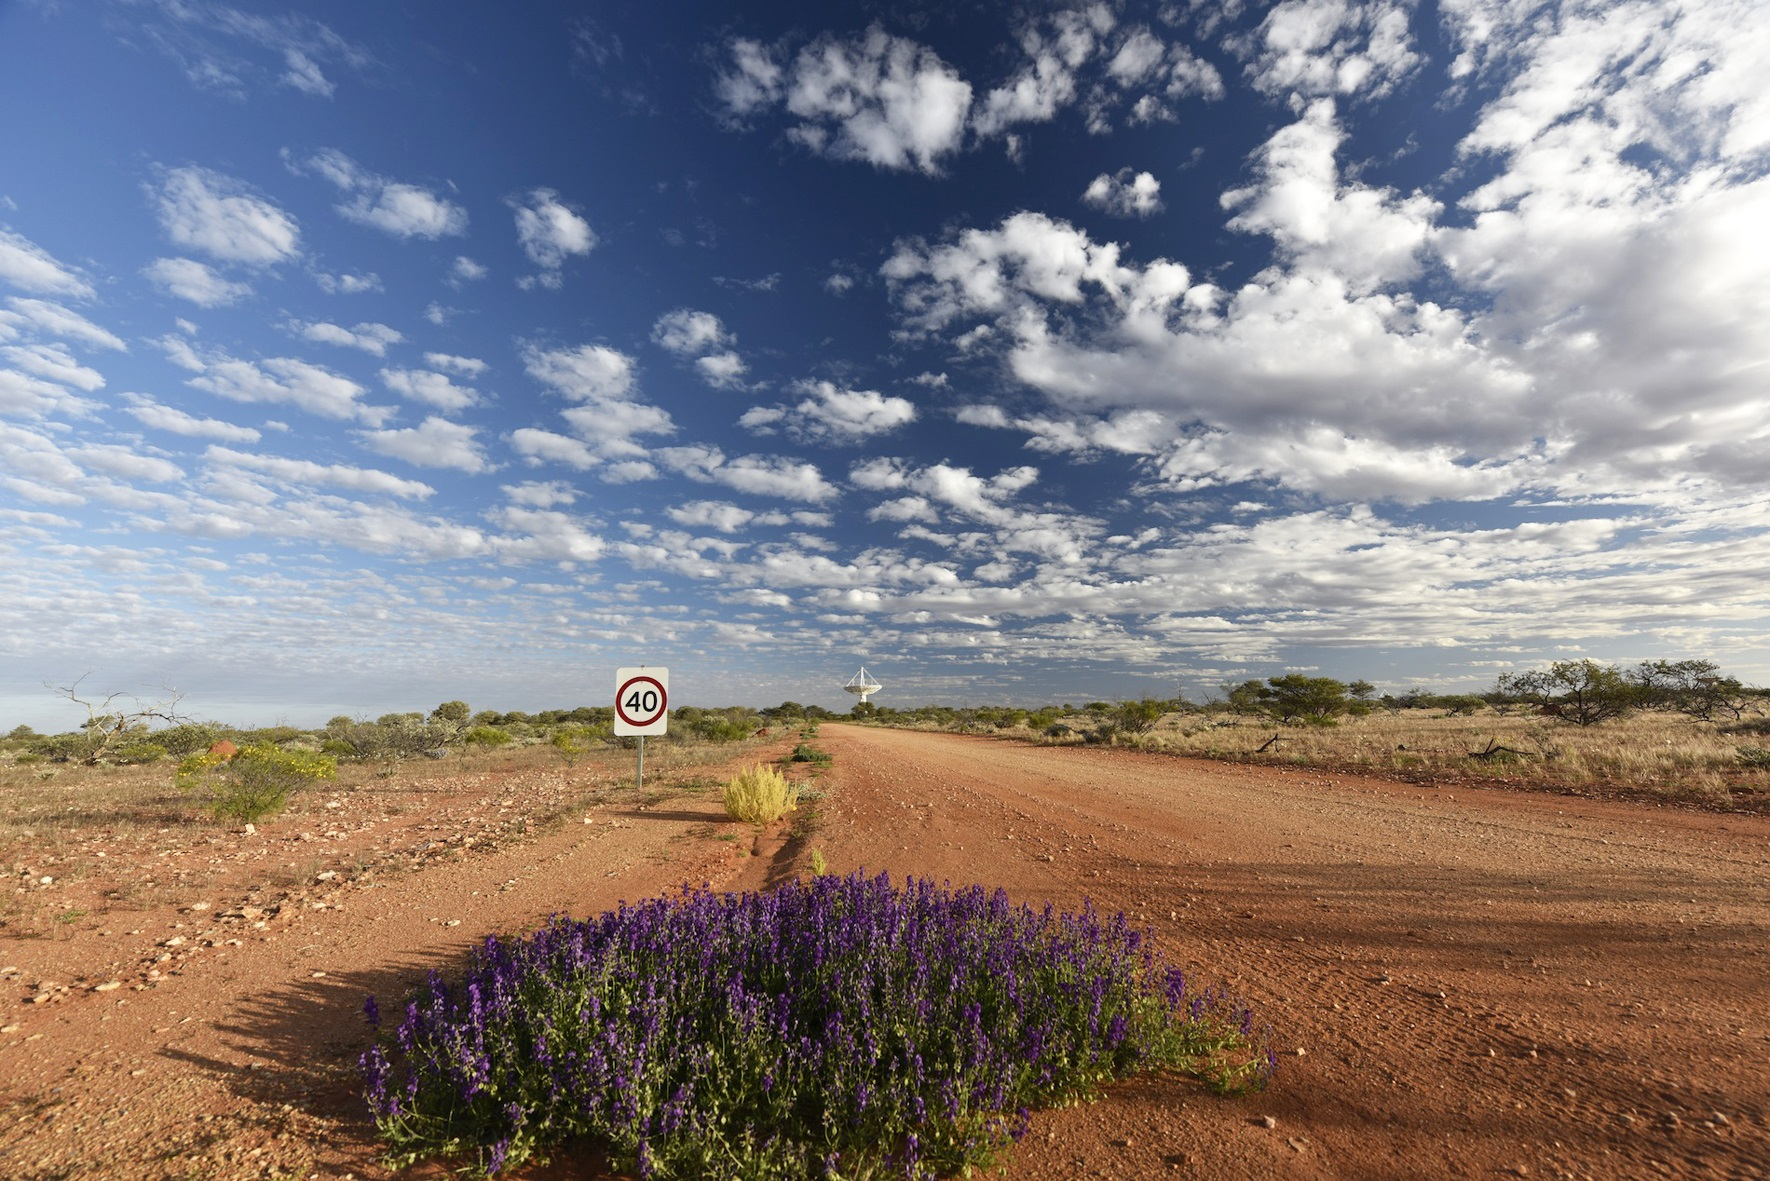 Dirt road leading up to one of the radio telescopes in the Square Kilometre Array in the distance.